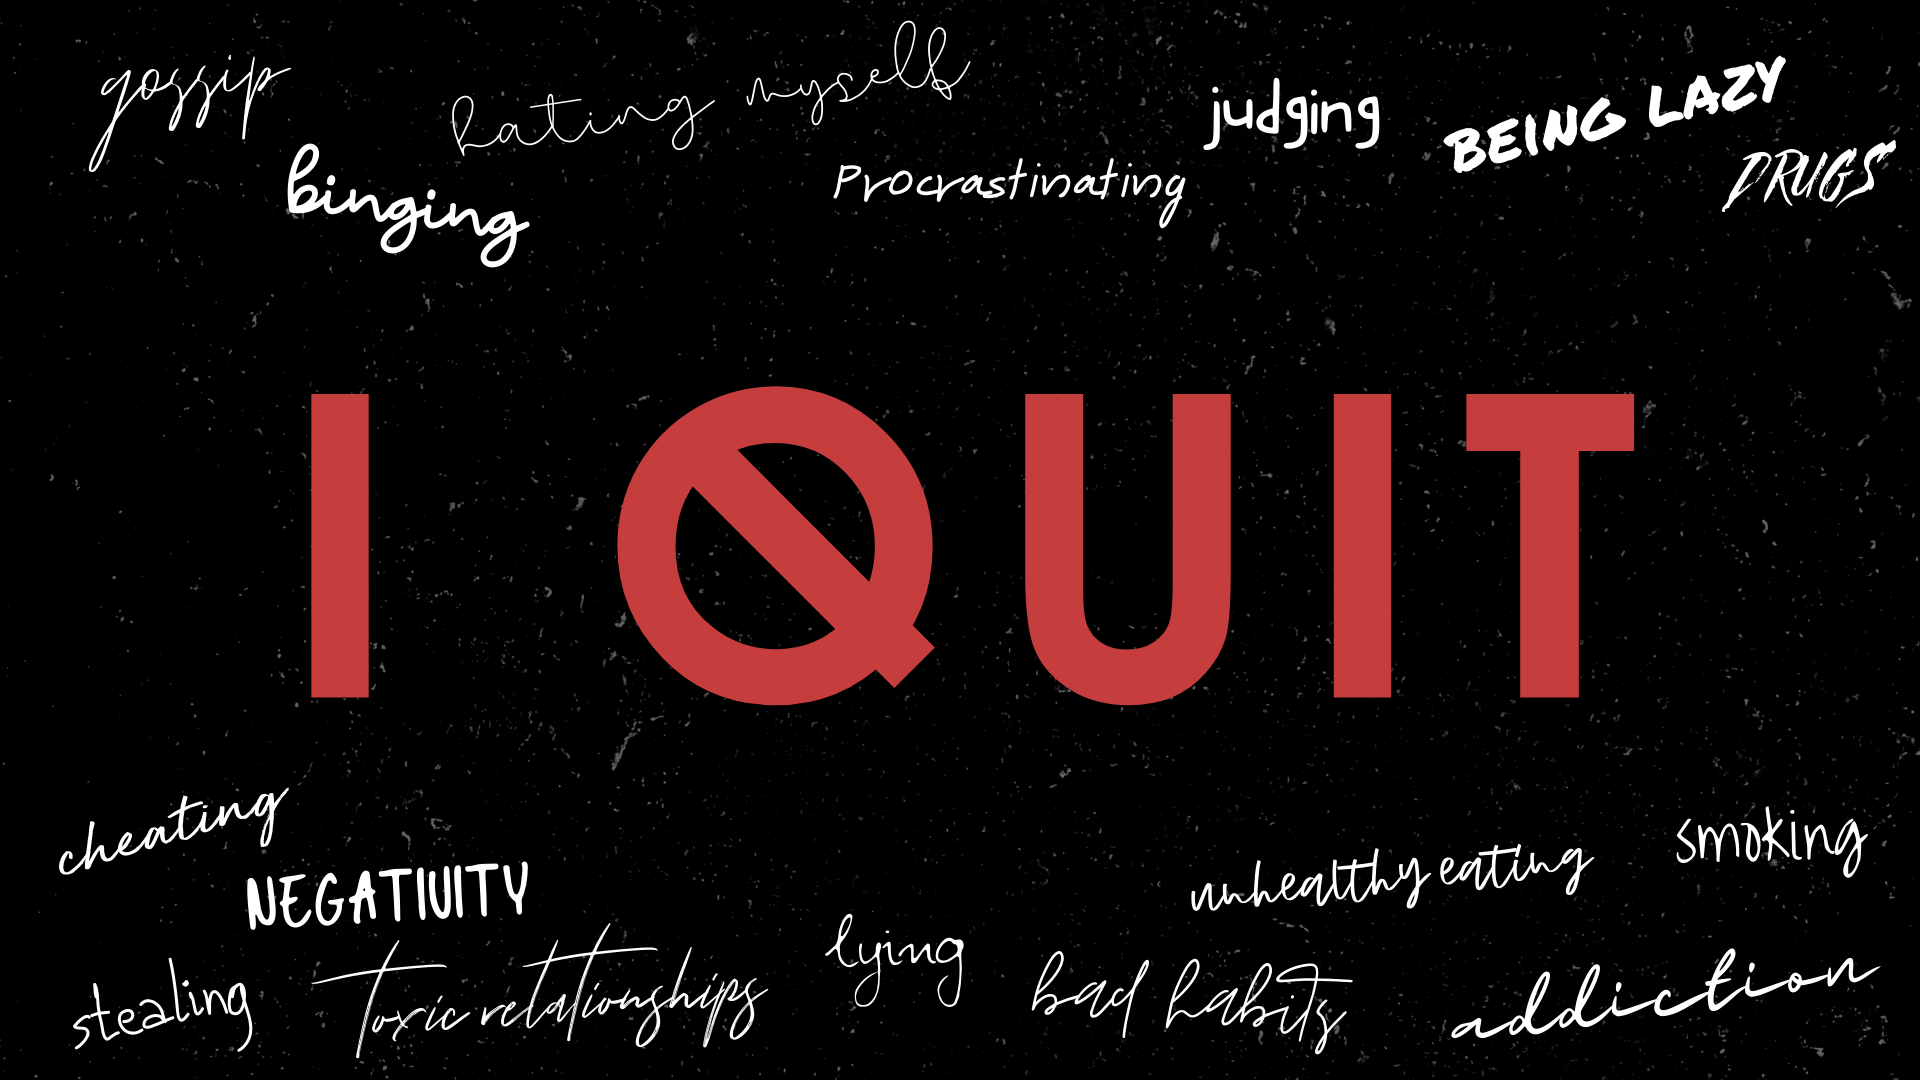 I-quit-series-coastal-community-church-series-graphic-idea